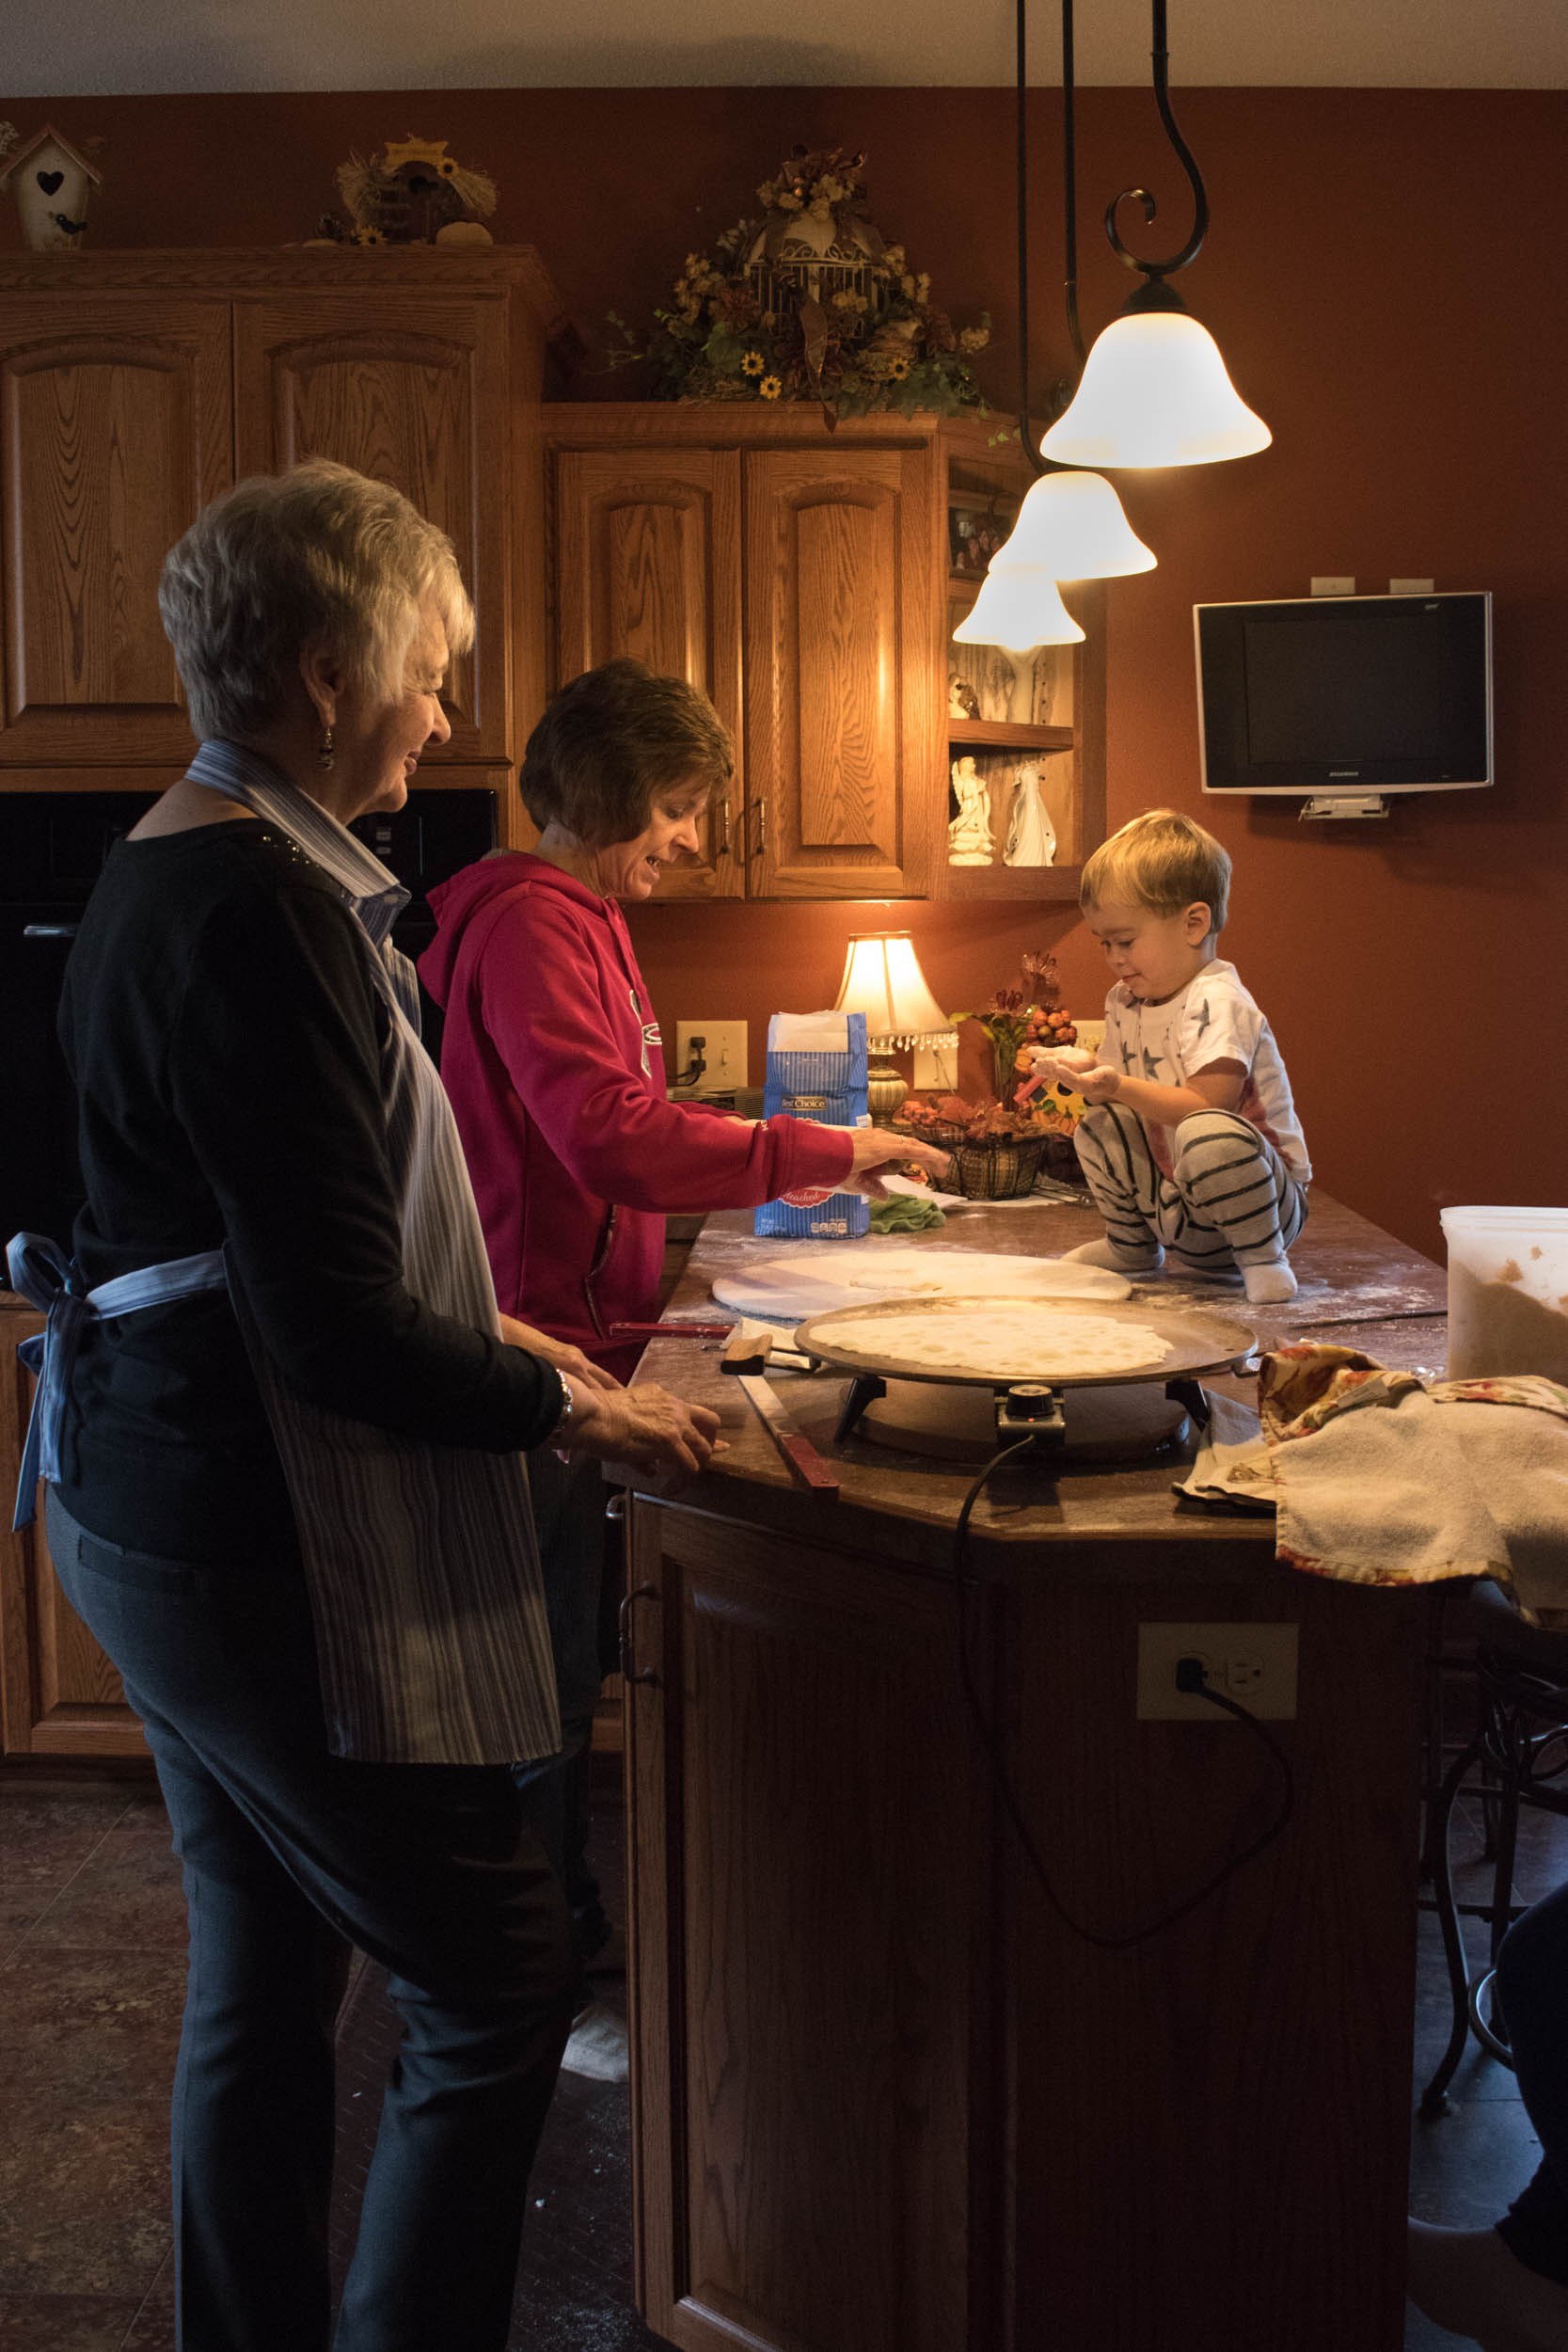 A special thanks to my grandma, my mom and my son, Josh, for helping make lefse this year.